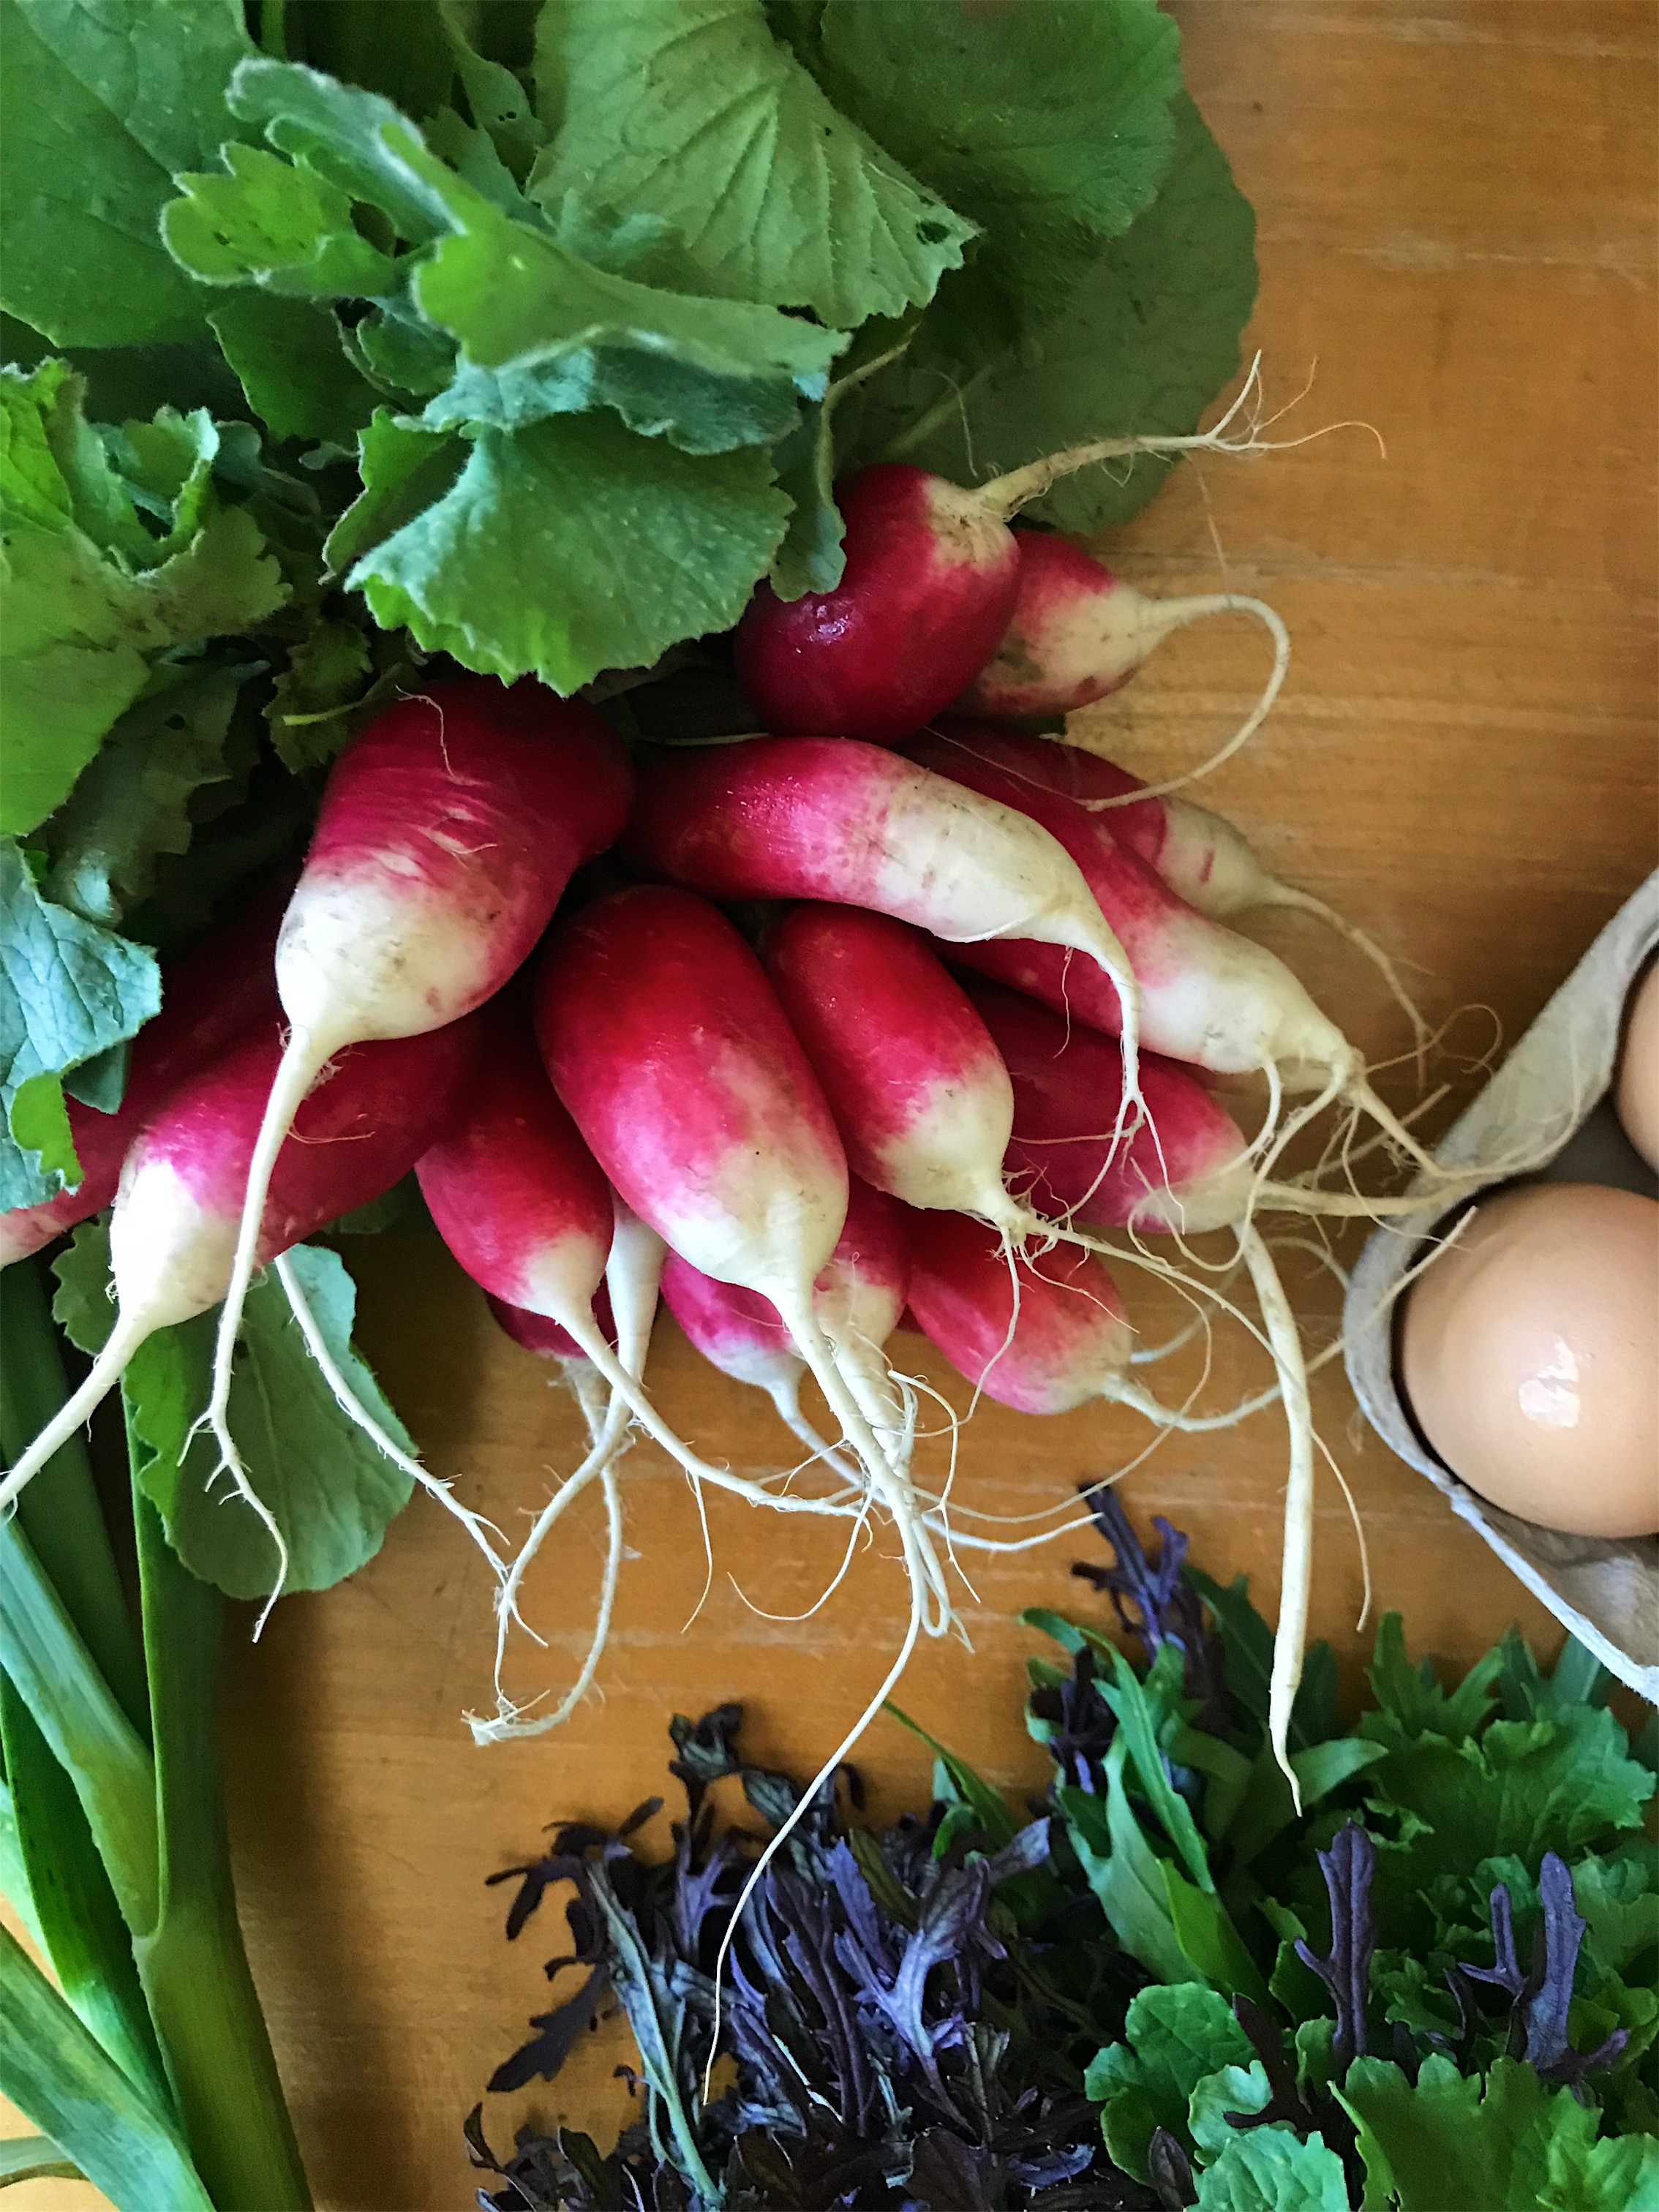 Goodies from last fall's CSA with New Earth Farm